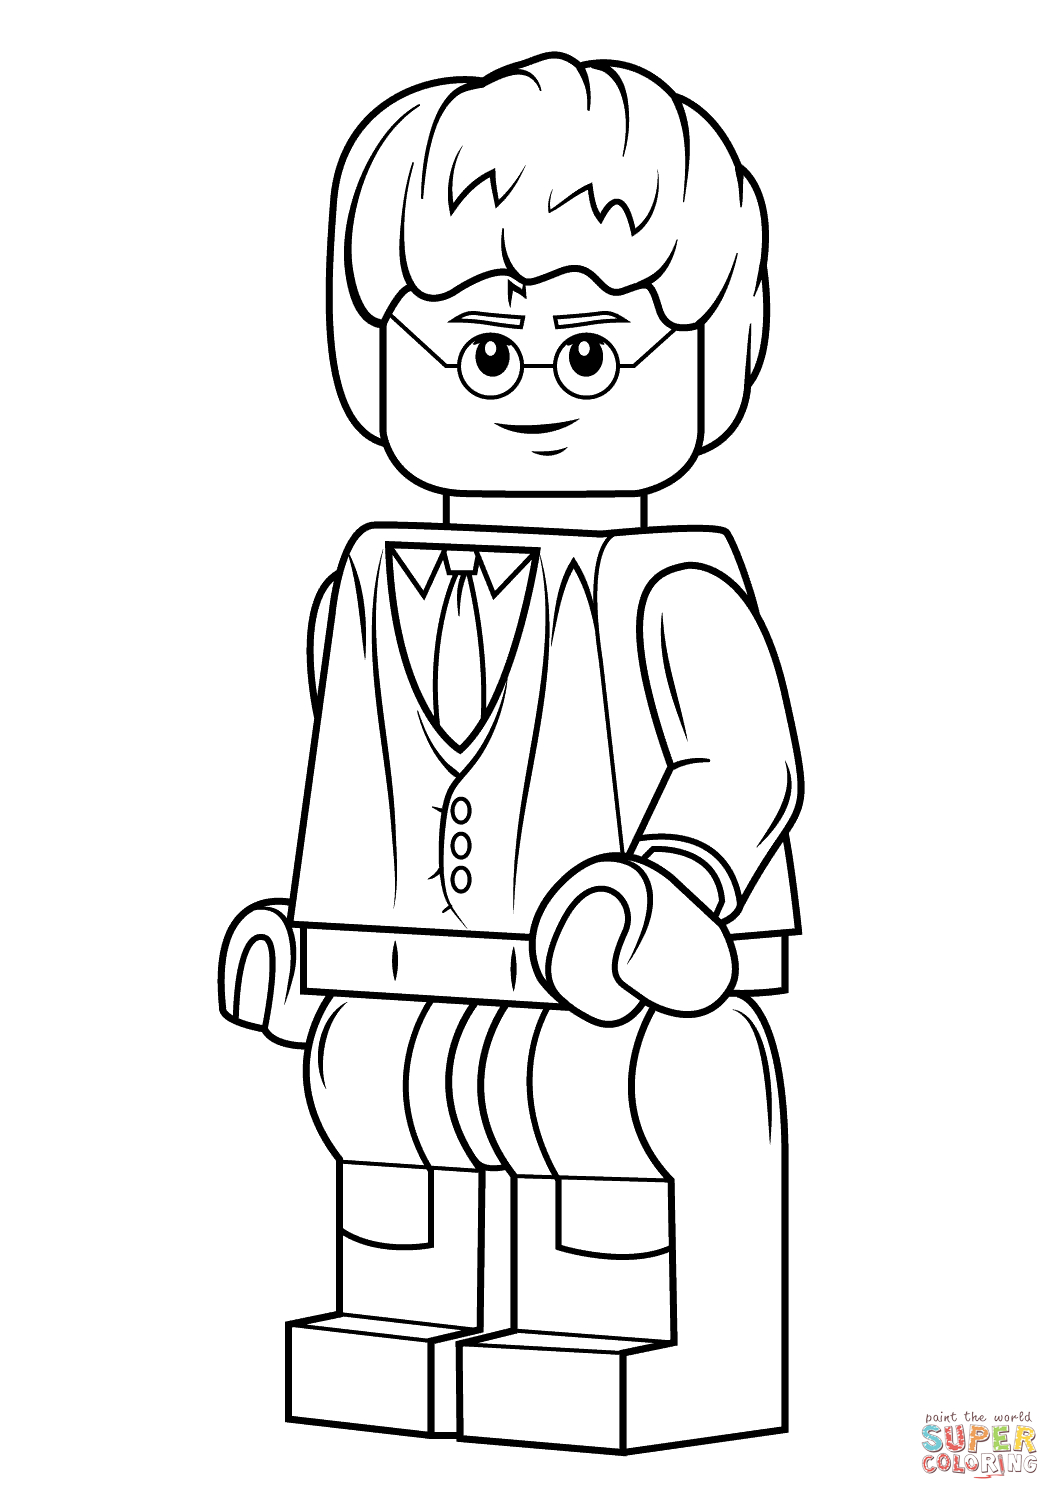 Lego Harry Potter Coloring Page | Free Printable Coloring Pages - Free Printable Harry Potter Colouring Sheets